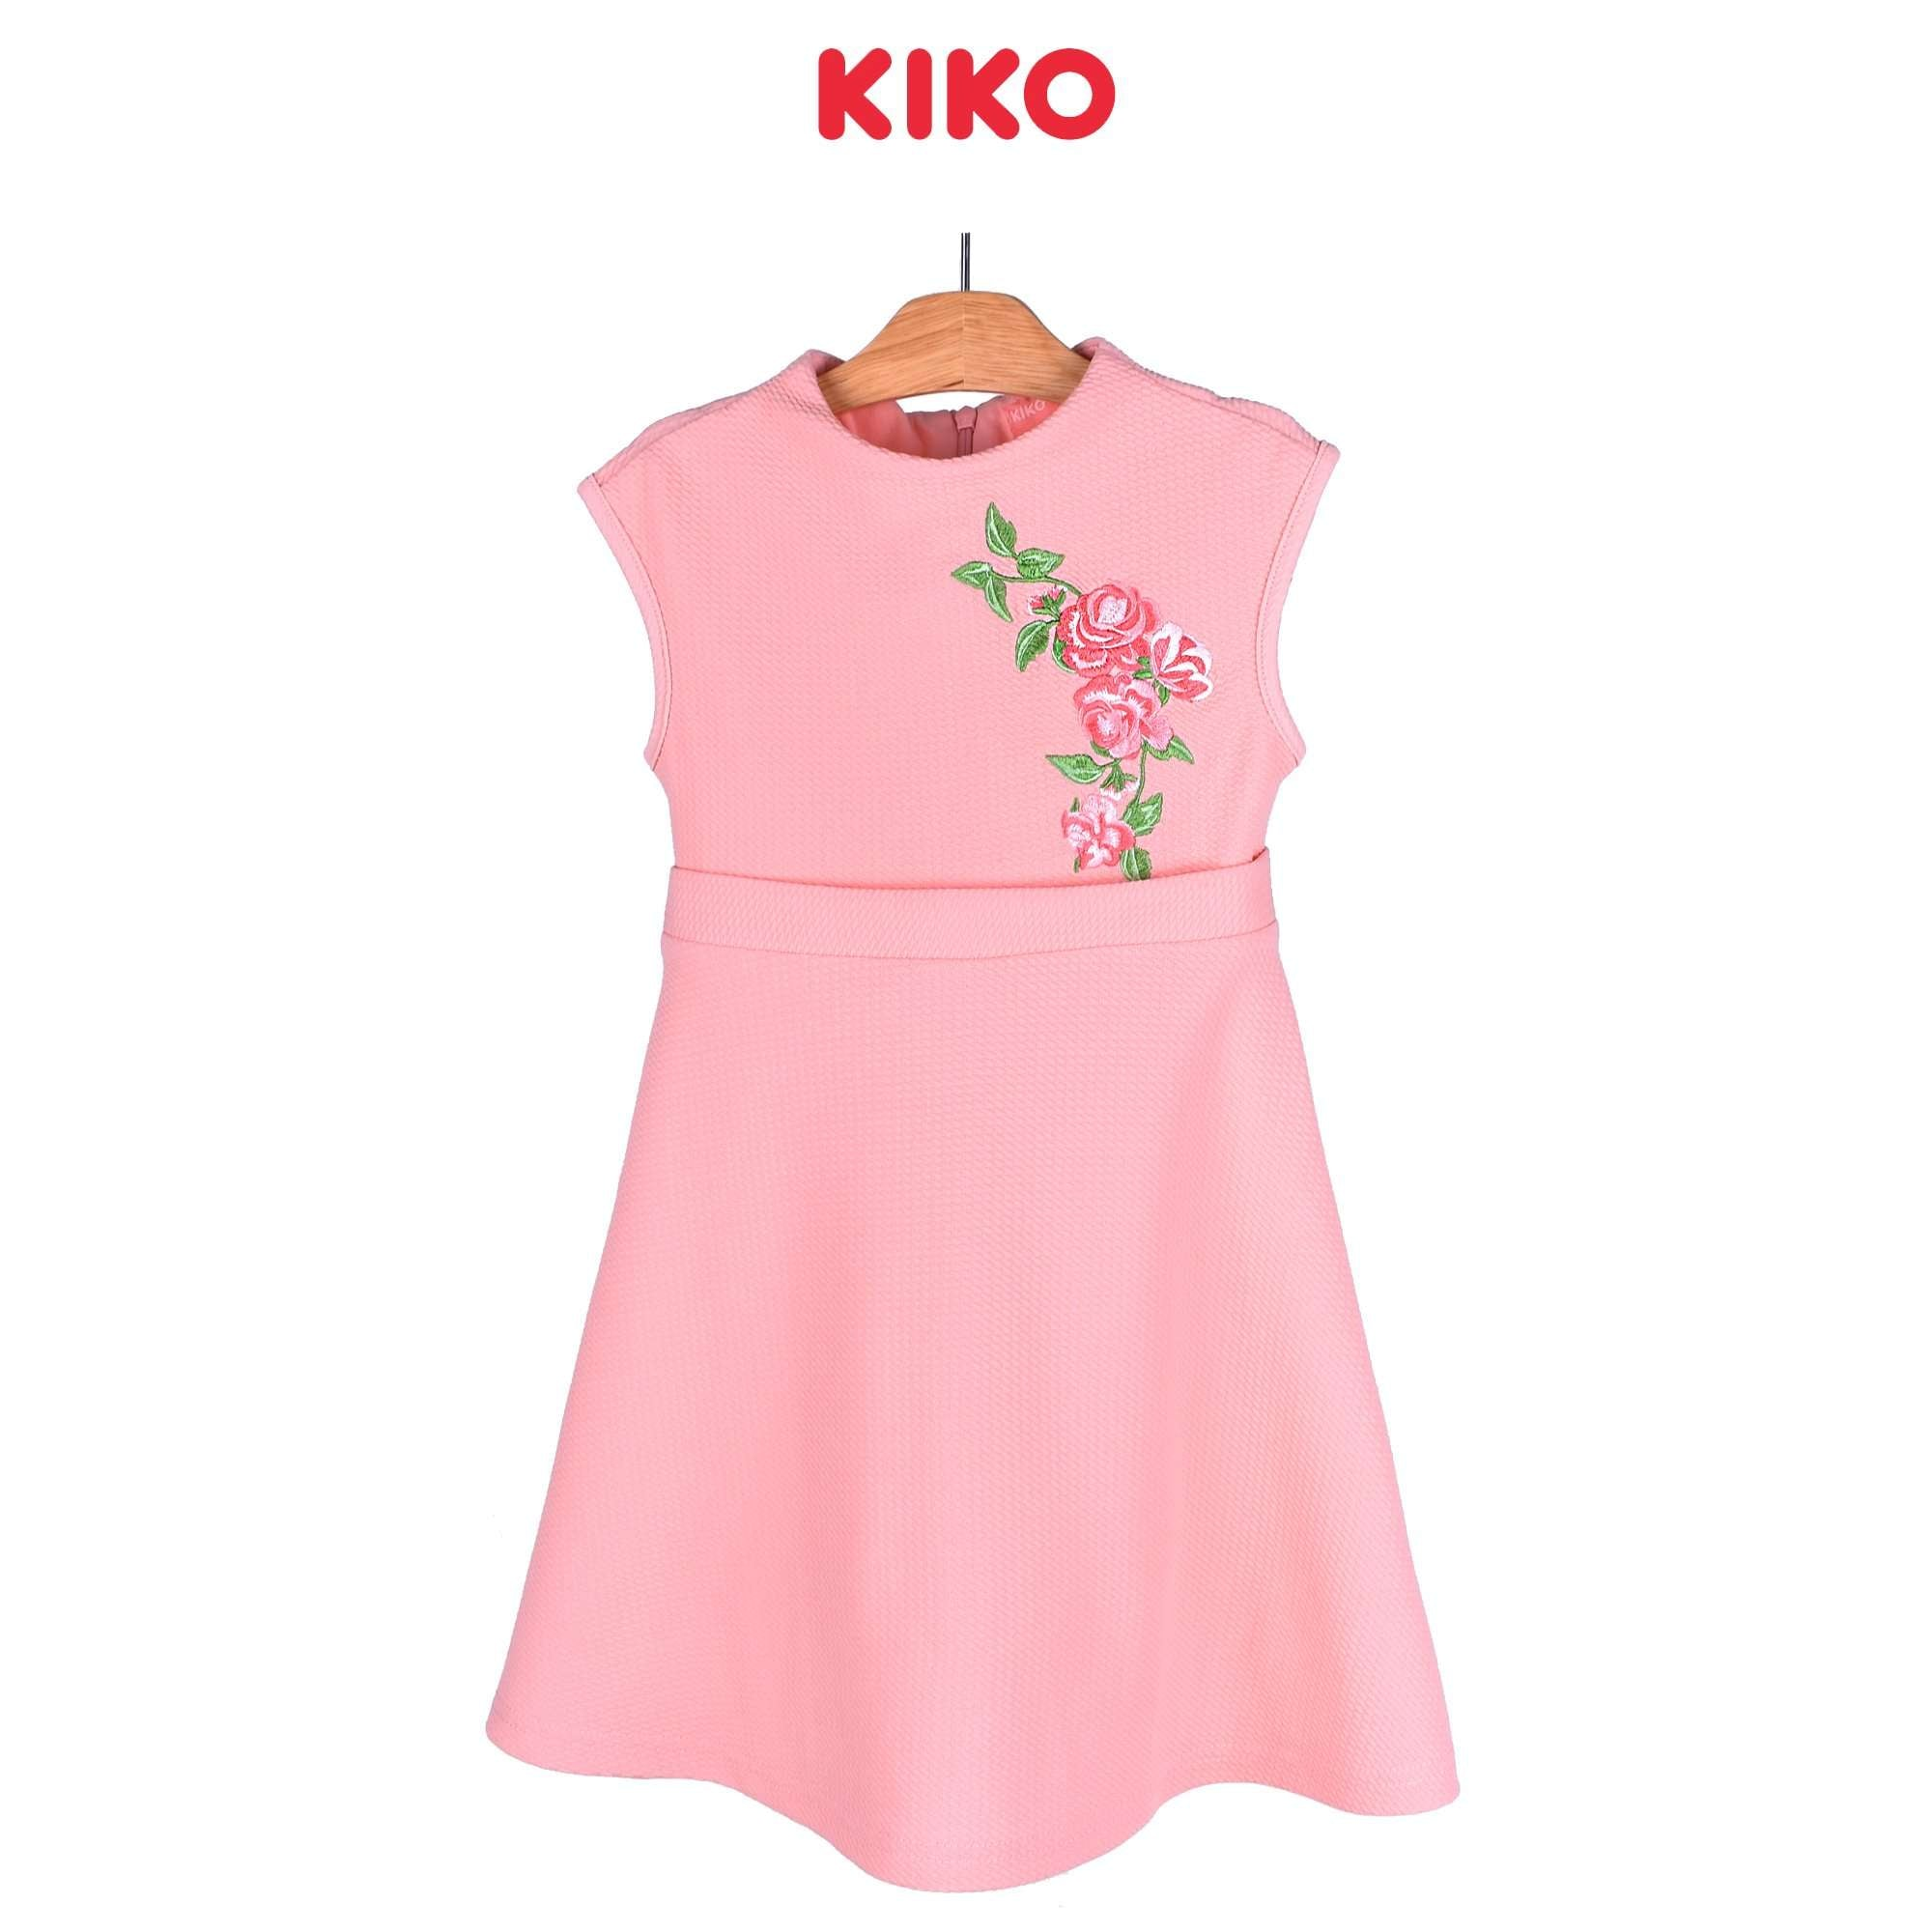 KIKO Girl Short Sleeve Dress - Peach 115077-322 : Buy KIKO online at CMG.MY